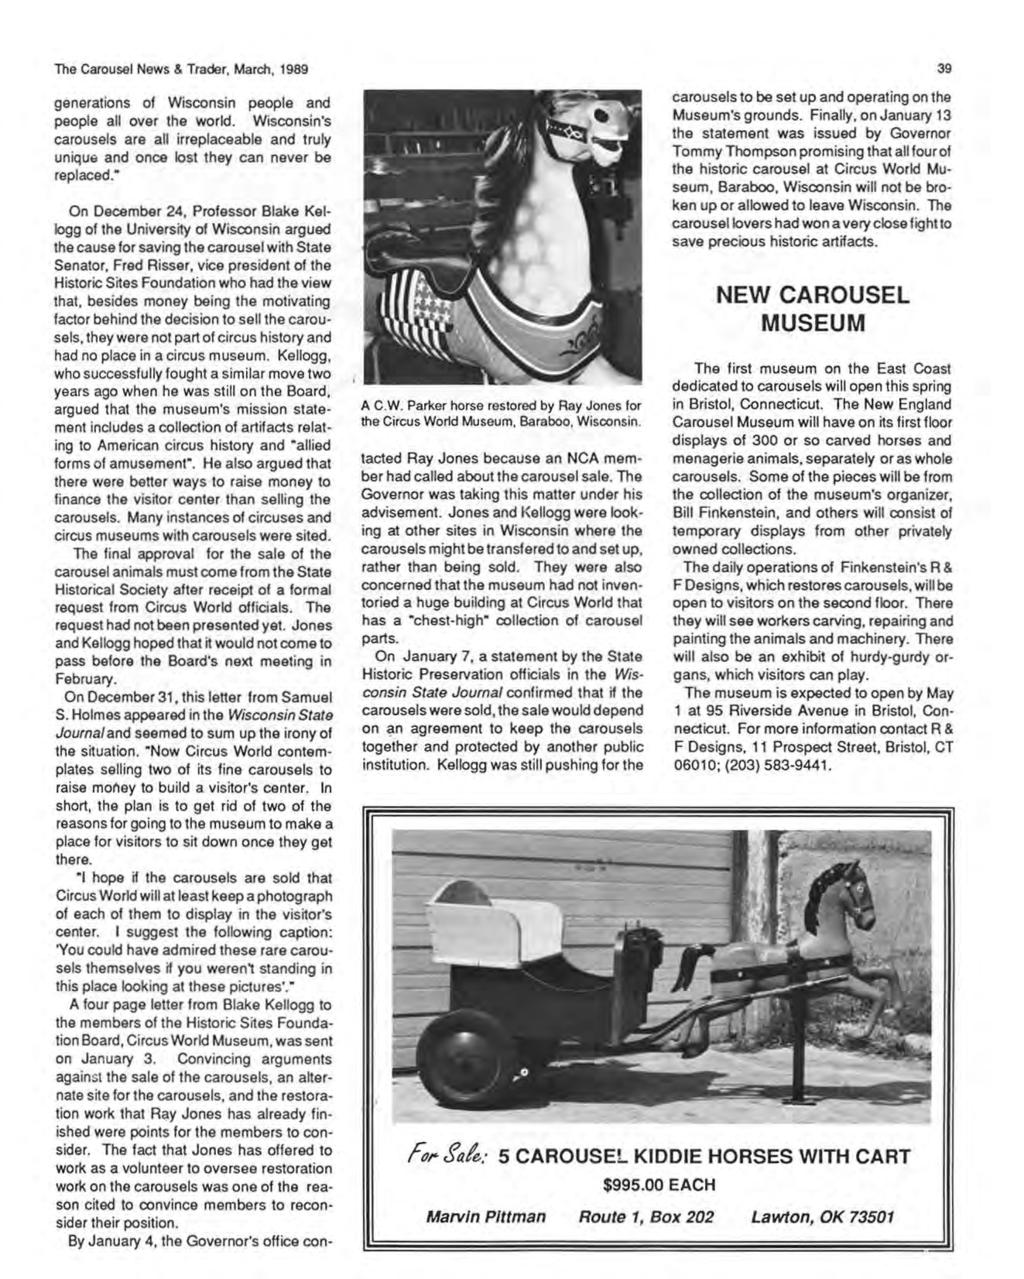 The Carousel News & Trader, March, 1989 generations of Wisconsin people and people all over the world.